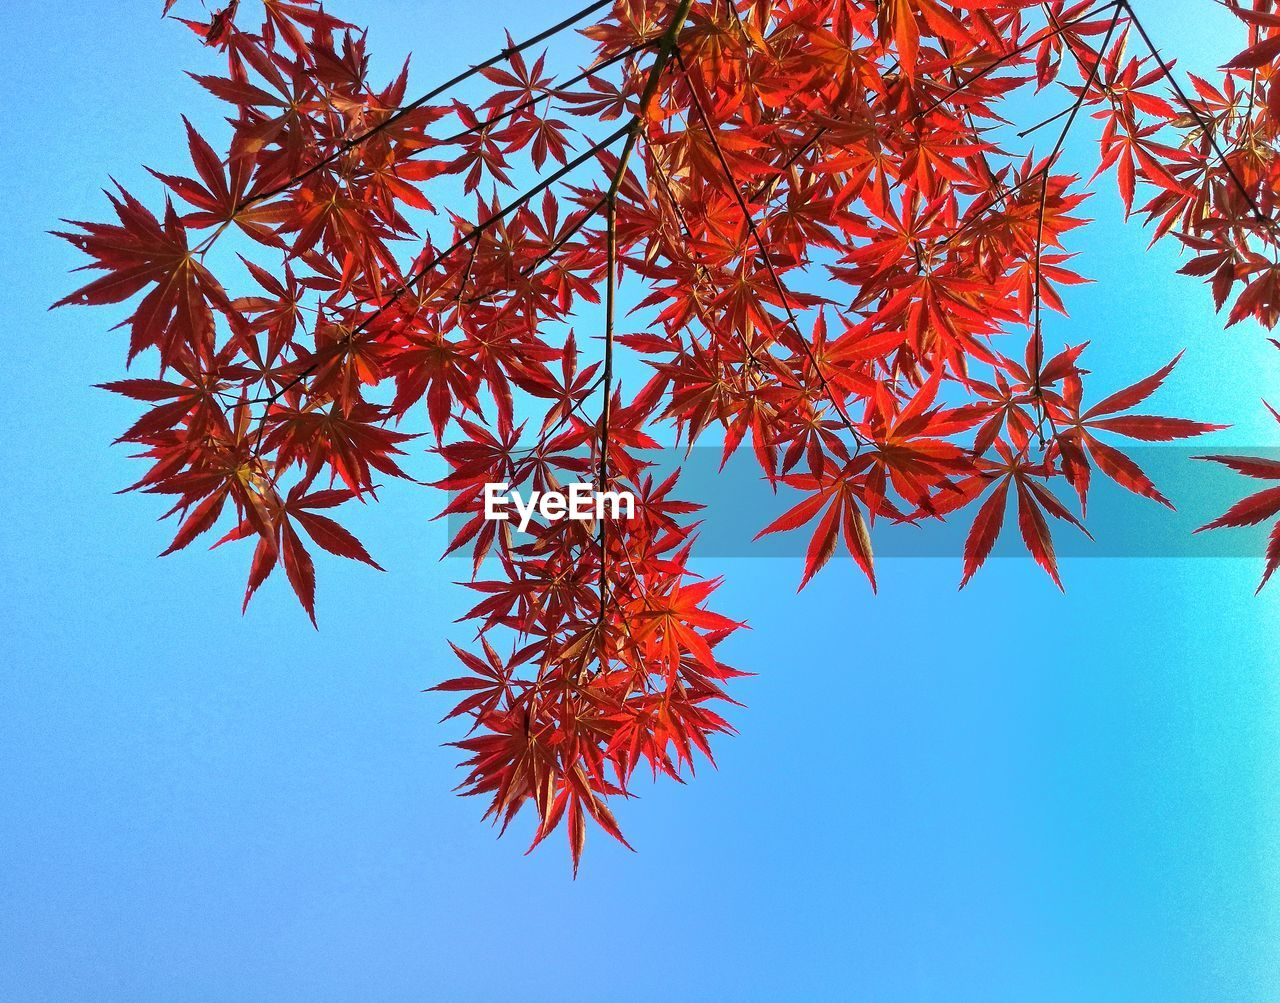 red, low angle view, day, clear sky, no people, leaf, autumn, blue, beauty in nature, nature, outdoors, close-up